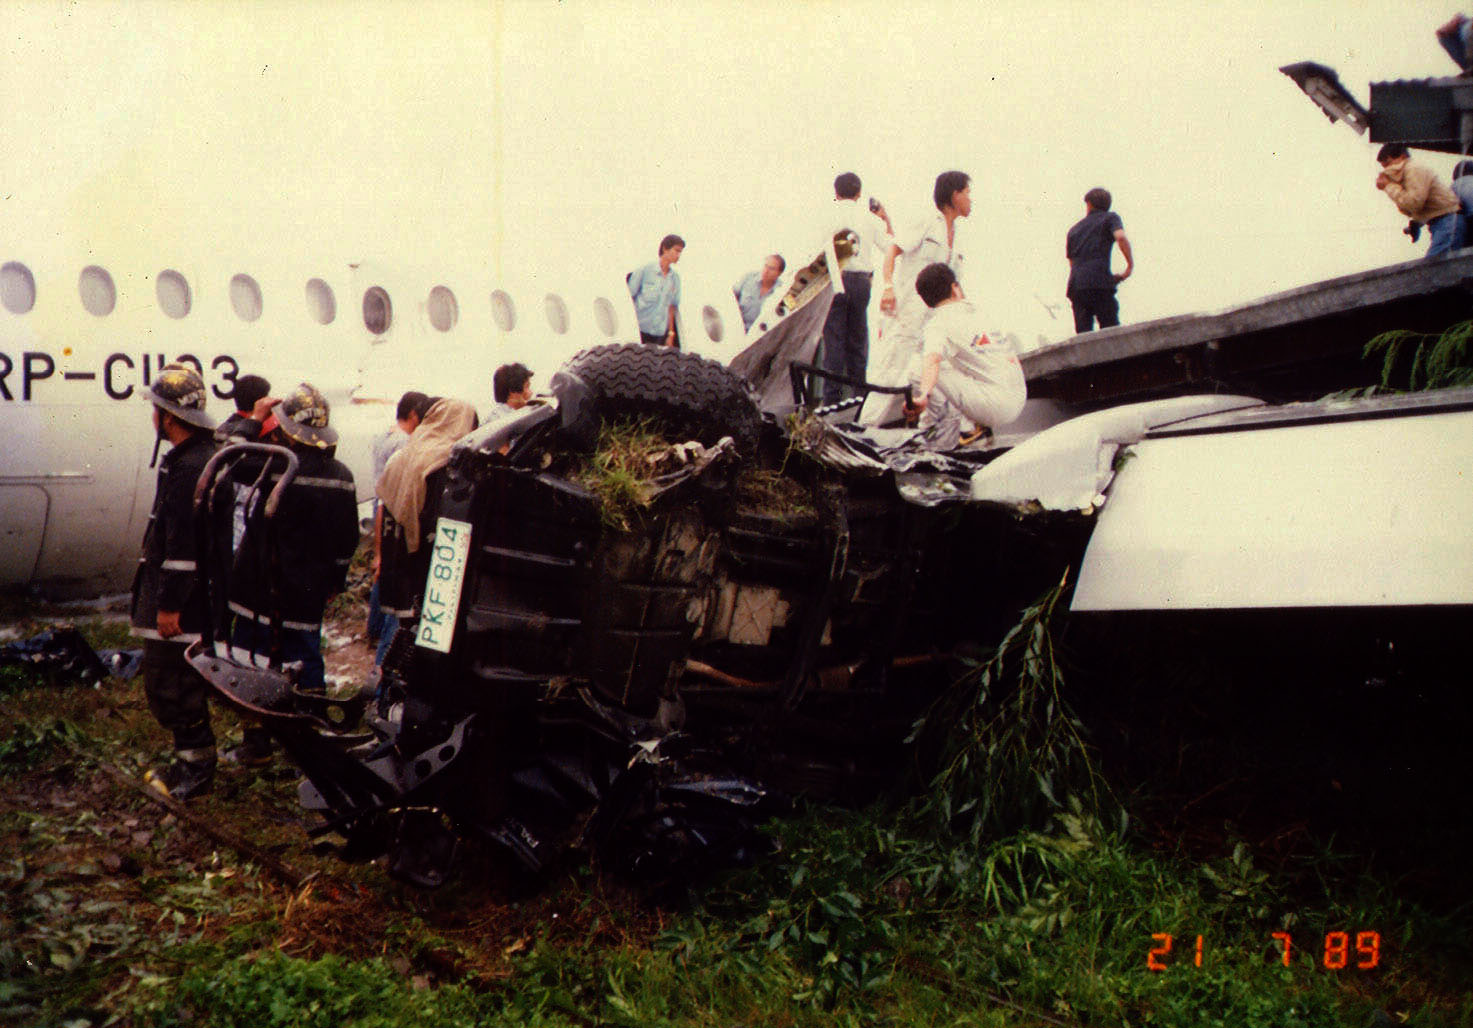 Philippine Airlines Accident RP C1193 BAC 111 516FP 21 JUL 1989 03